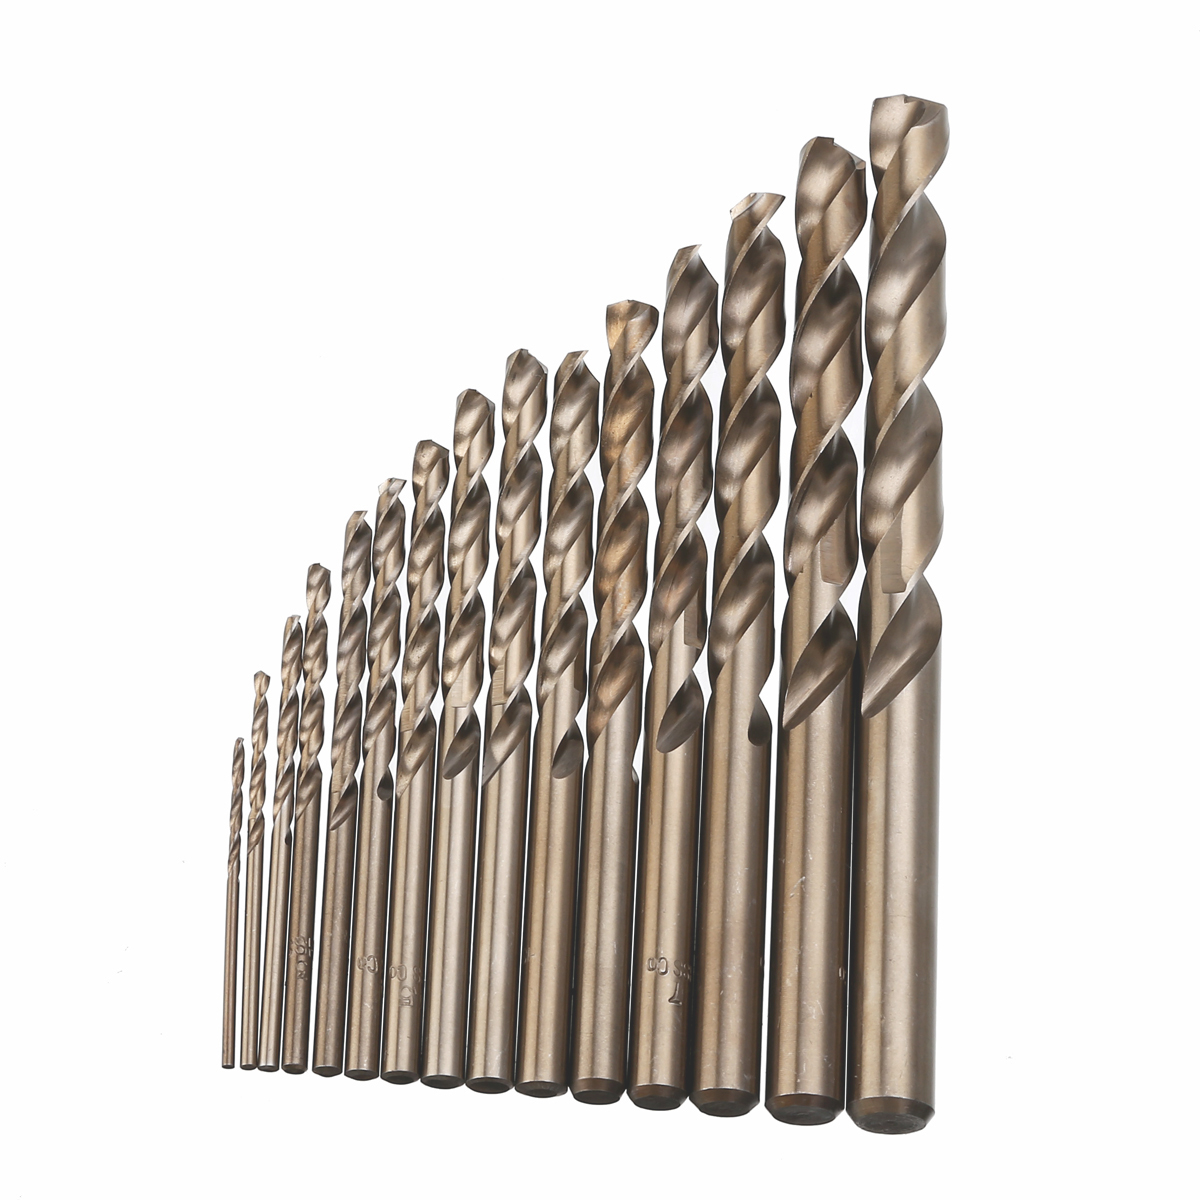 15pcs Cobalt Drill Bits For Metal Wood Working M35 HSS Steel Straight Shank 1.5-10mm Twist Drill Bit Power Tools Mayitr ollin professional шампунь на основе черного риса based shampoo black rice 400 мл